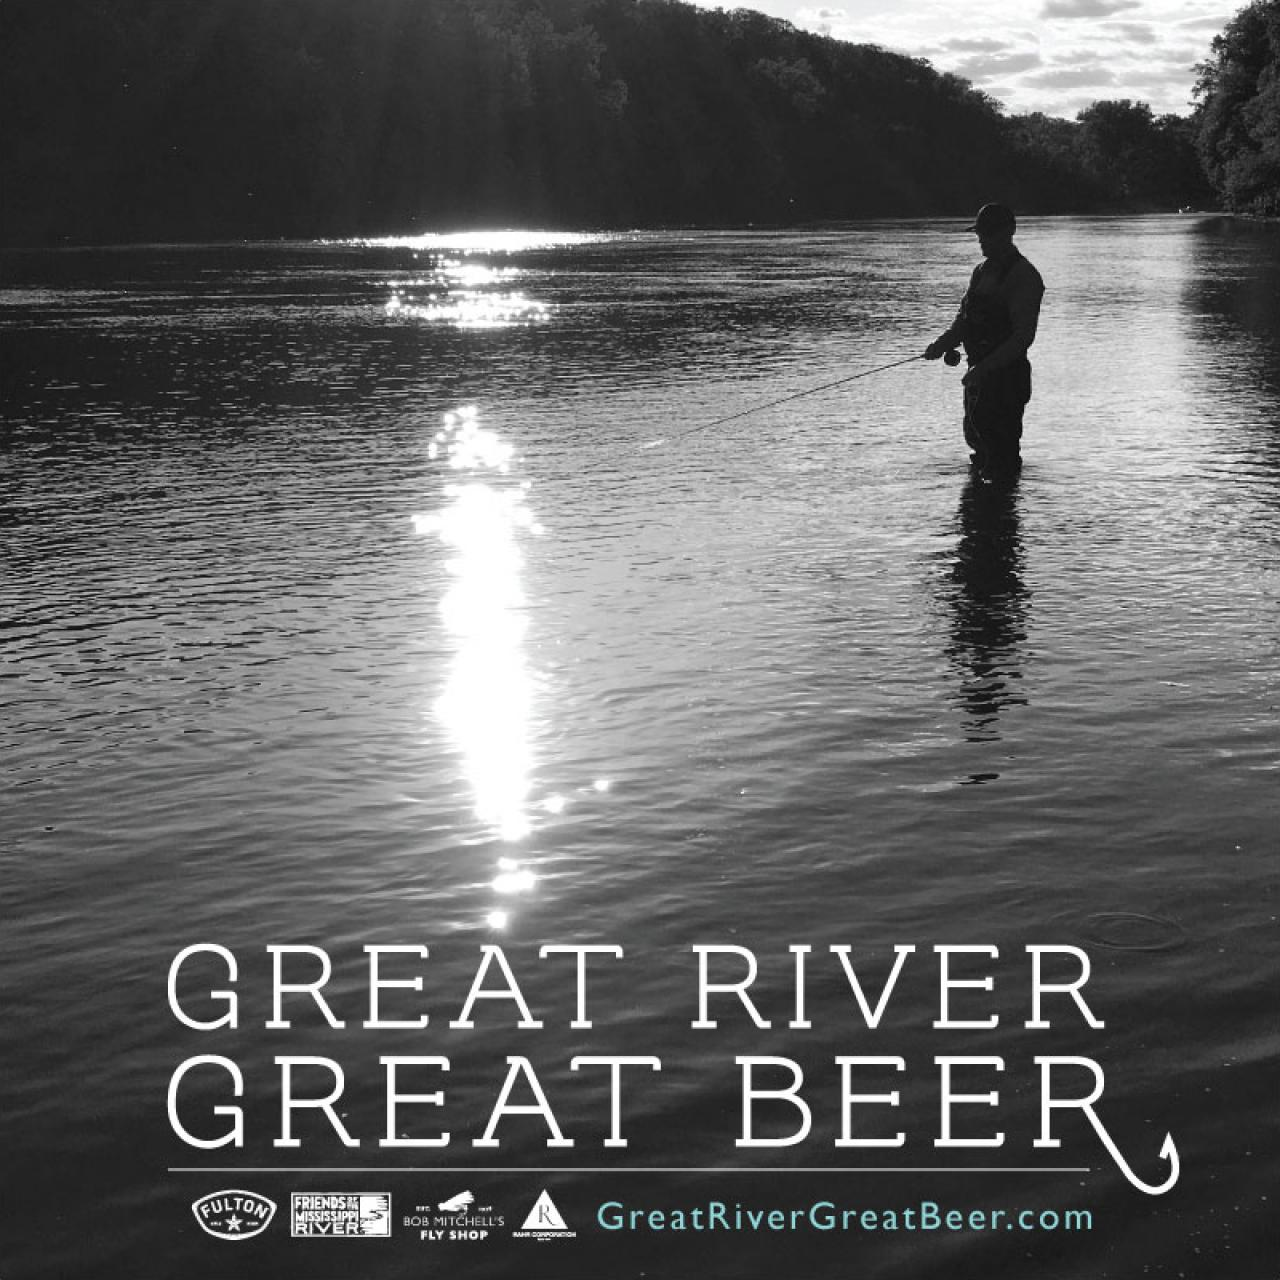 Great River. Great Beer.